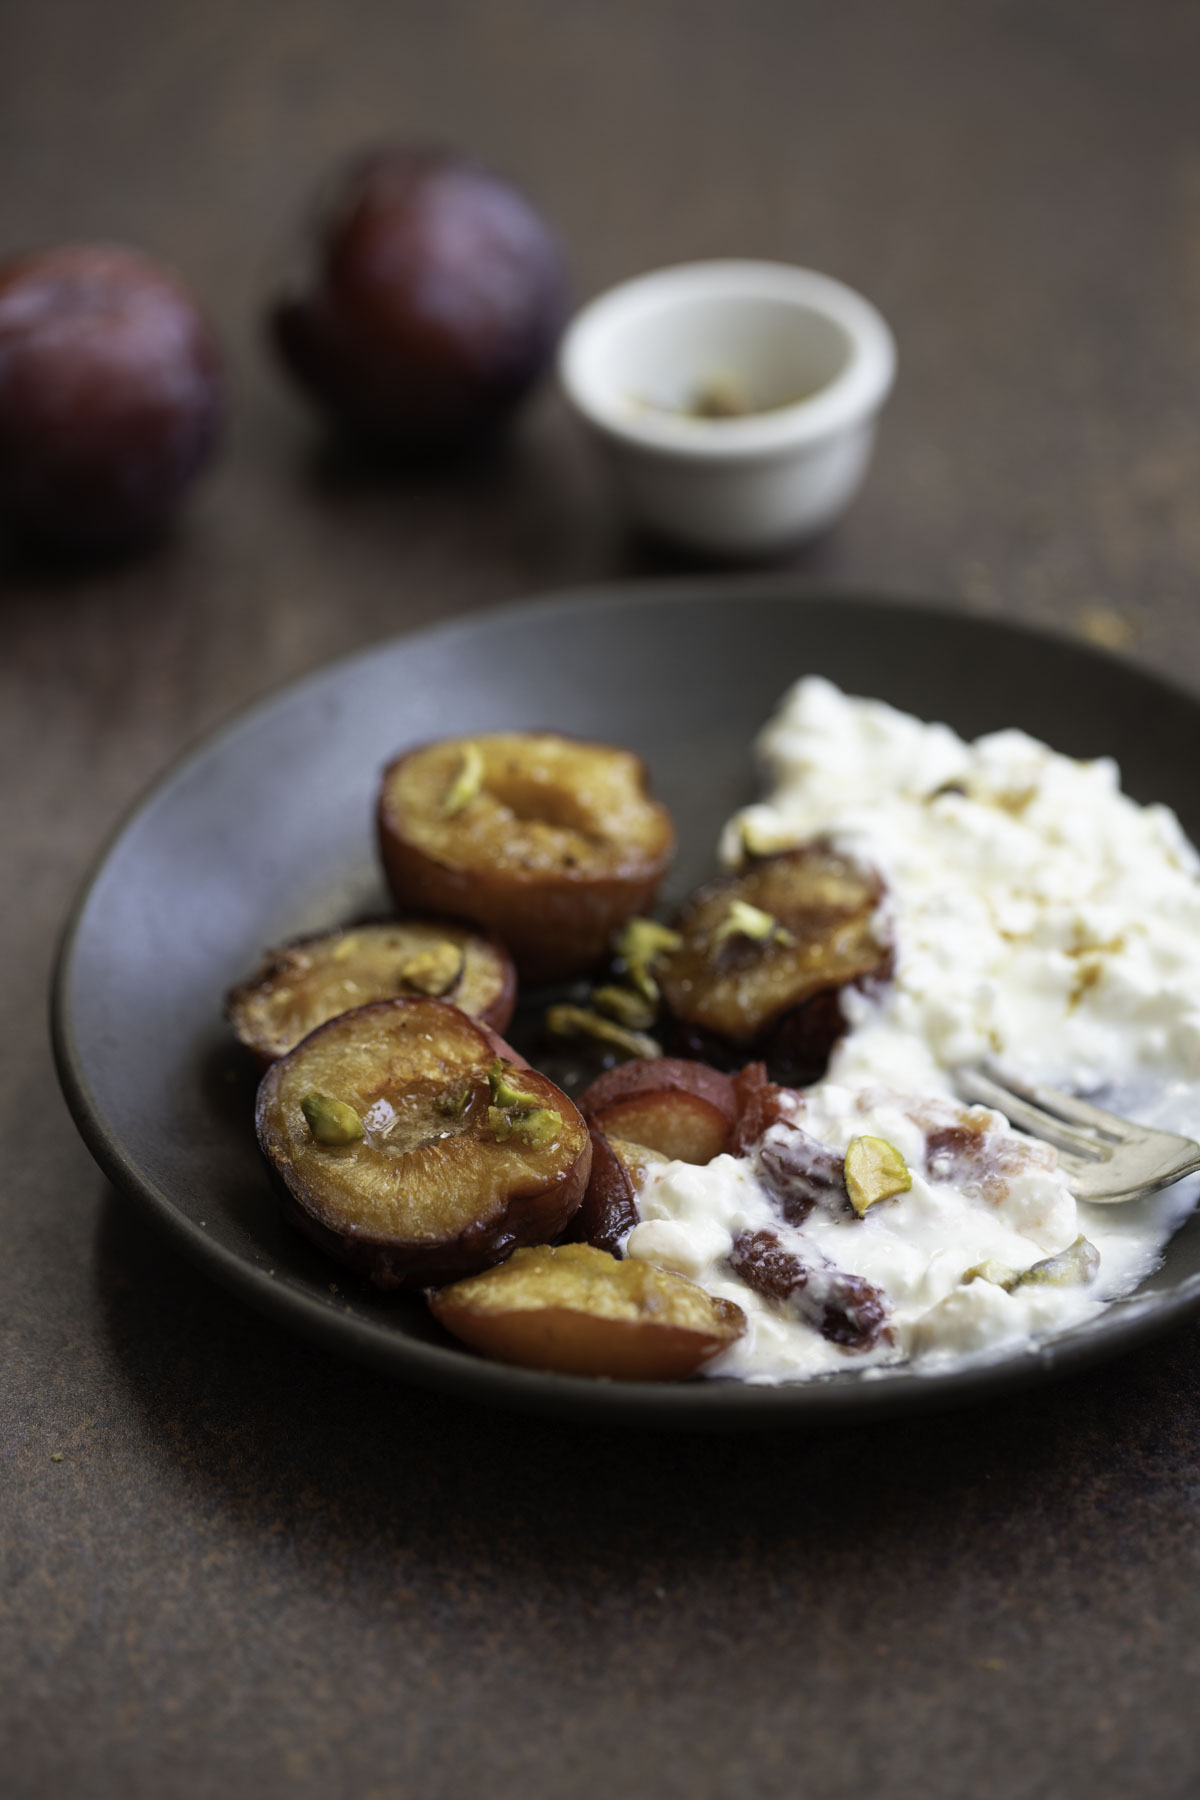 roasted plums served with cottage cheese and garnished with pistachios